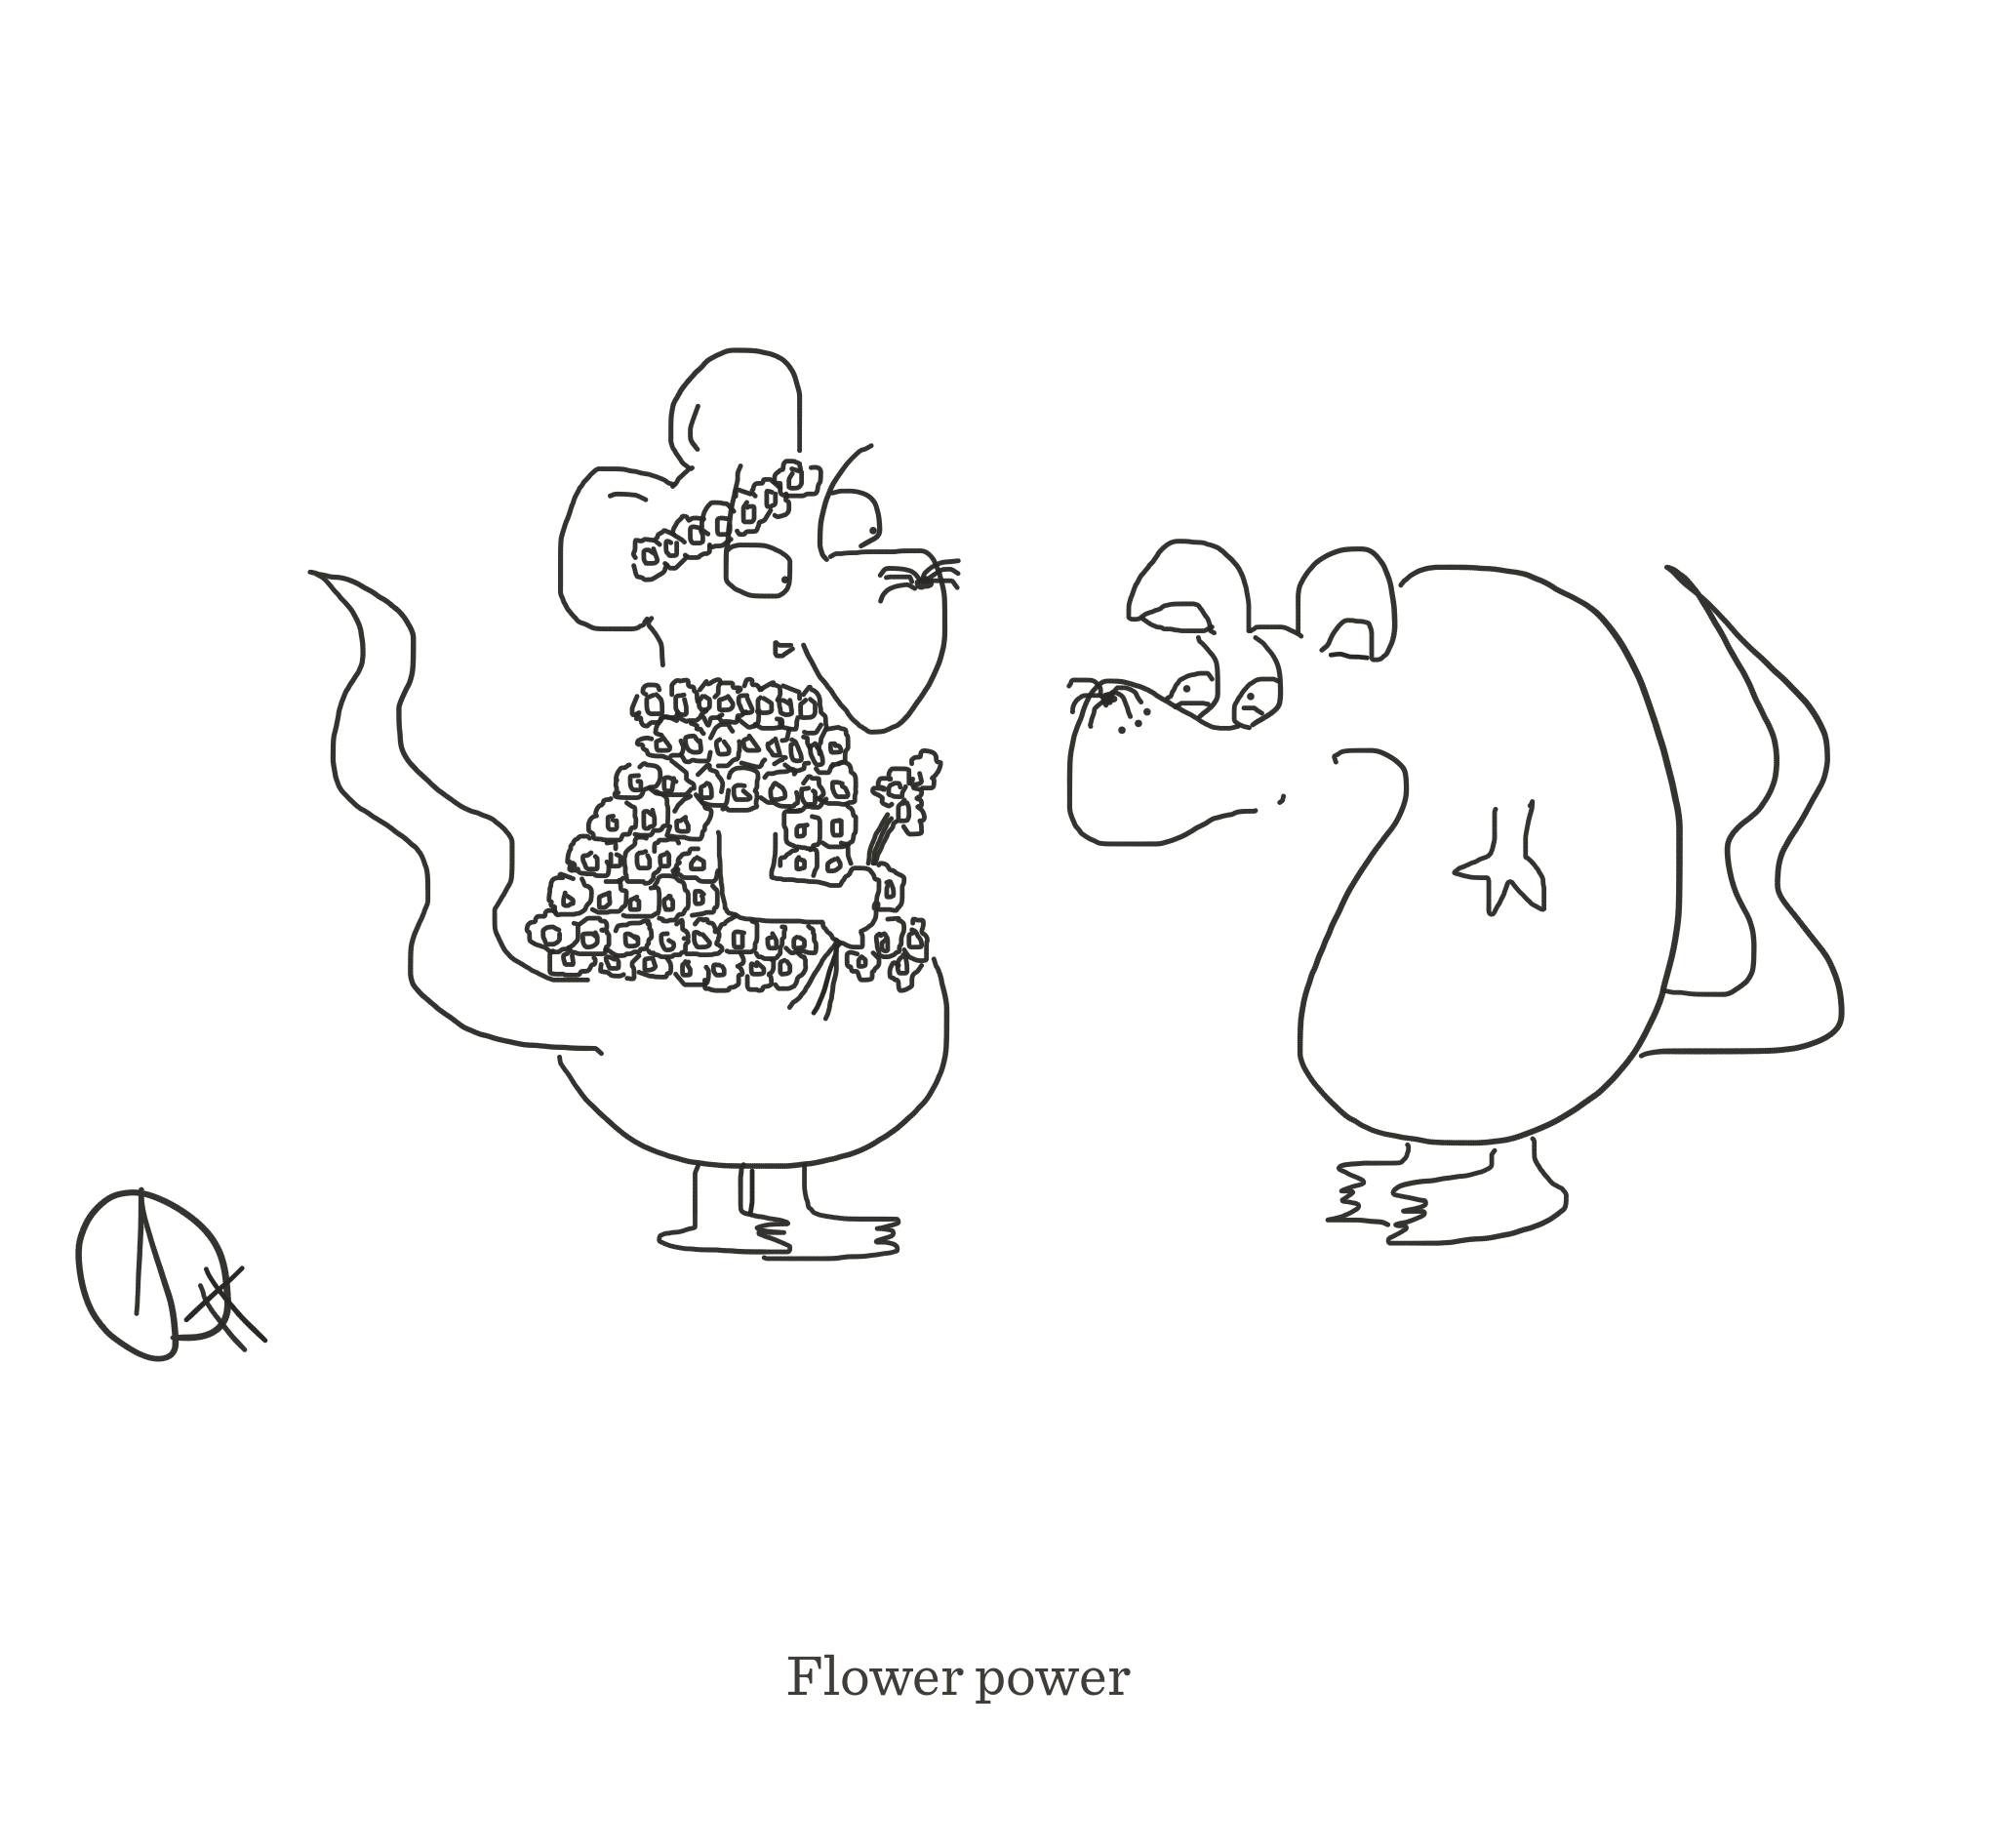 Flower power, The Happy Rat cartoon